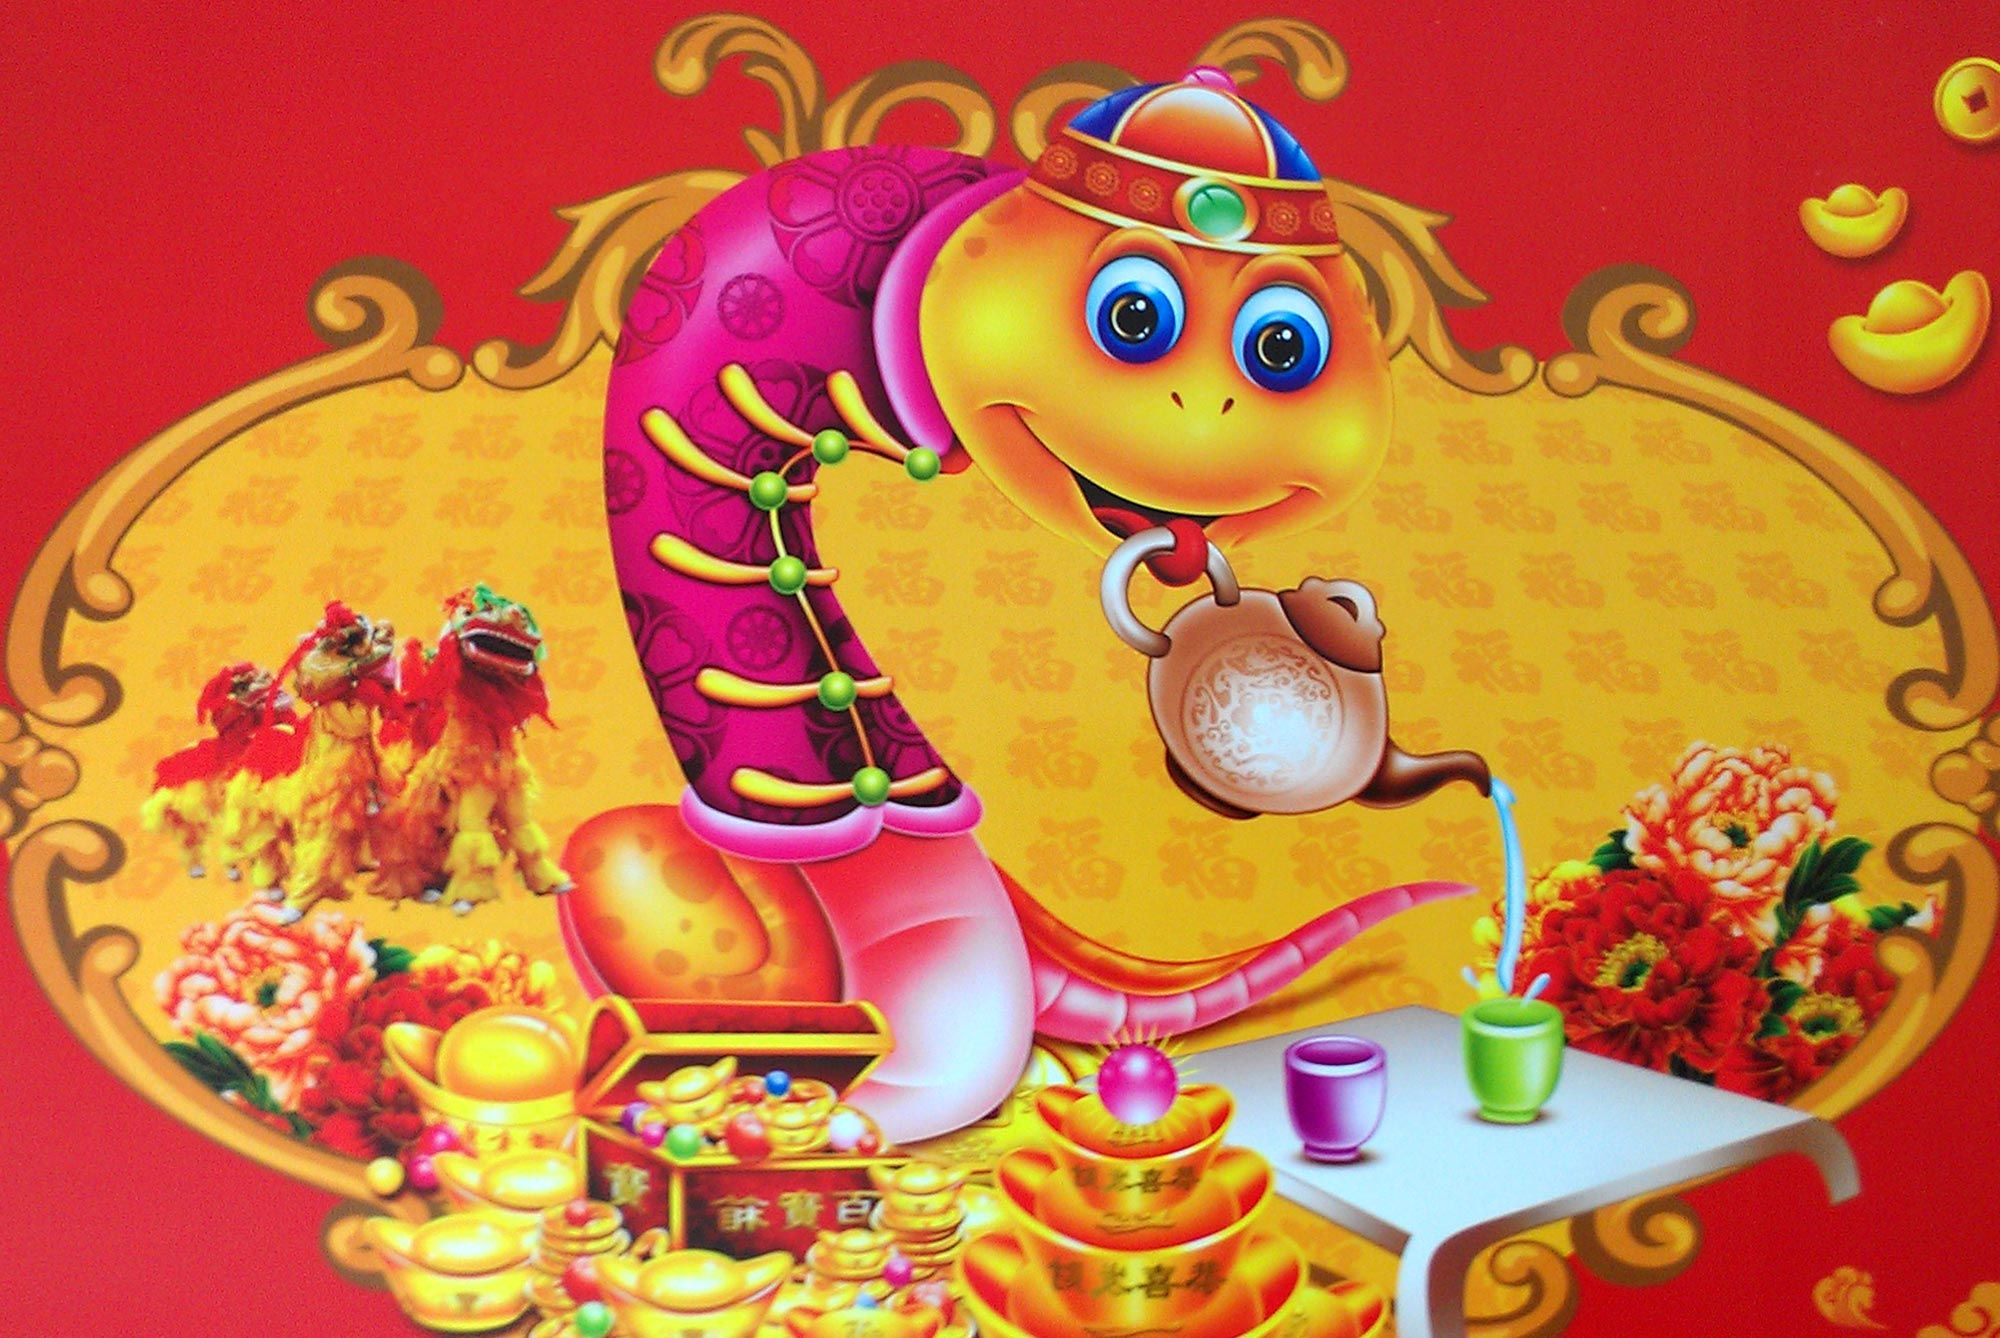 Chinese new year animation snake betting leeds v st helens betting tips